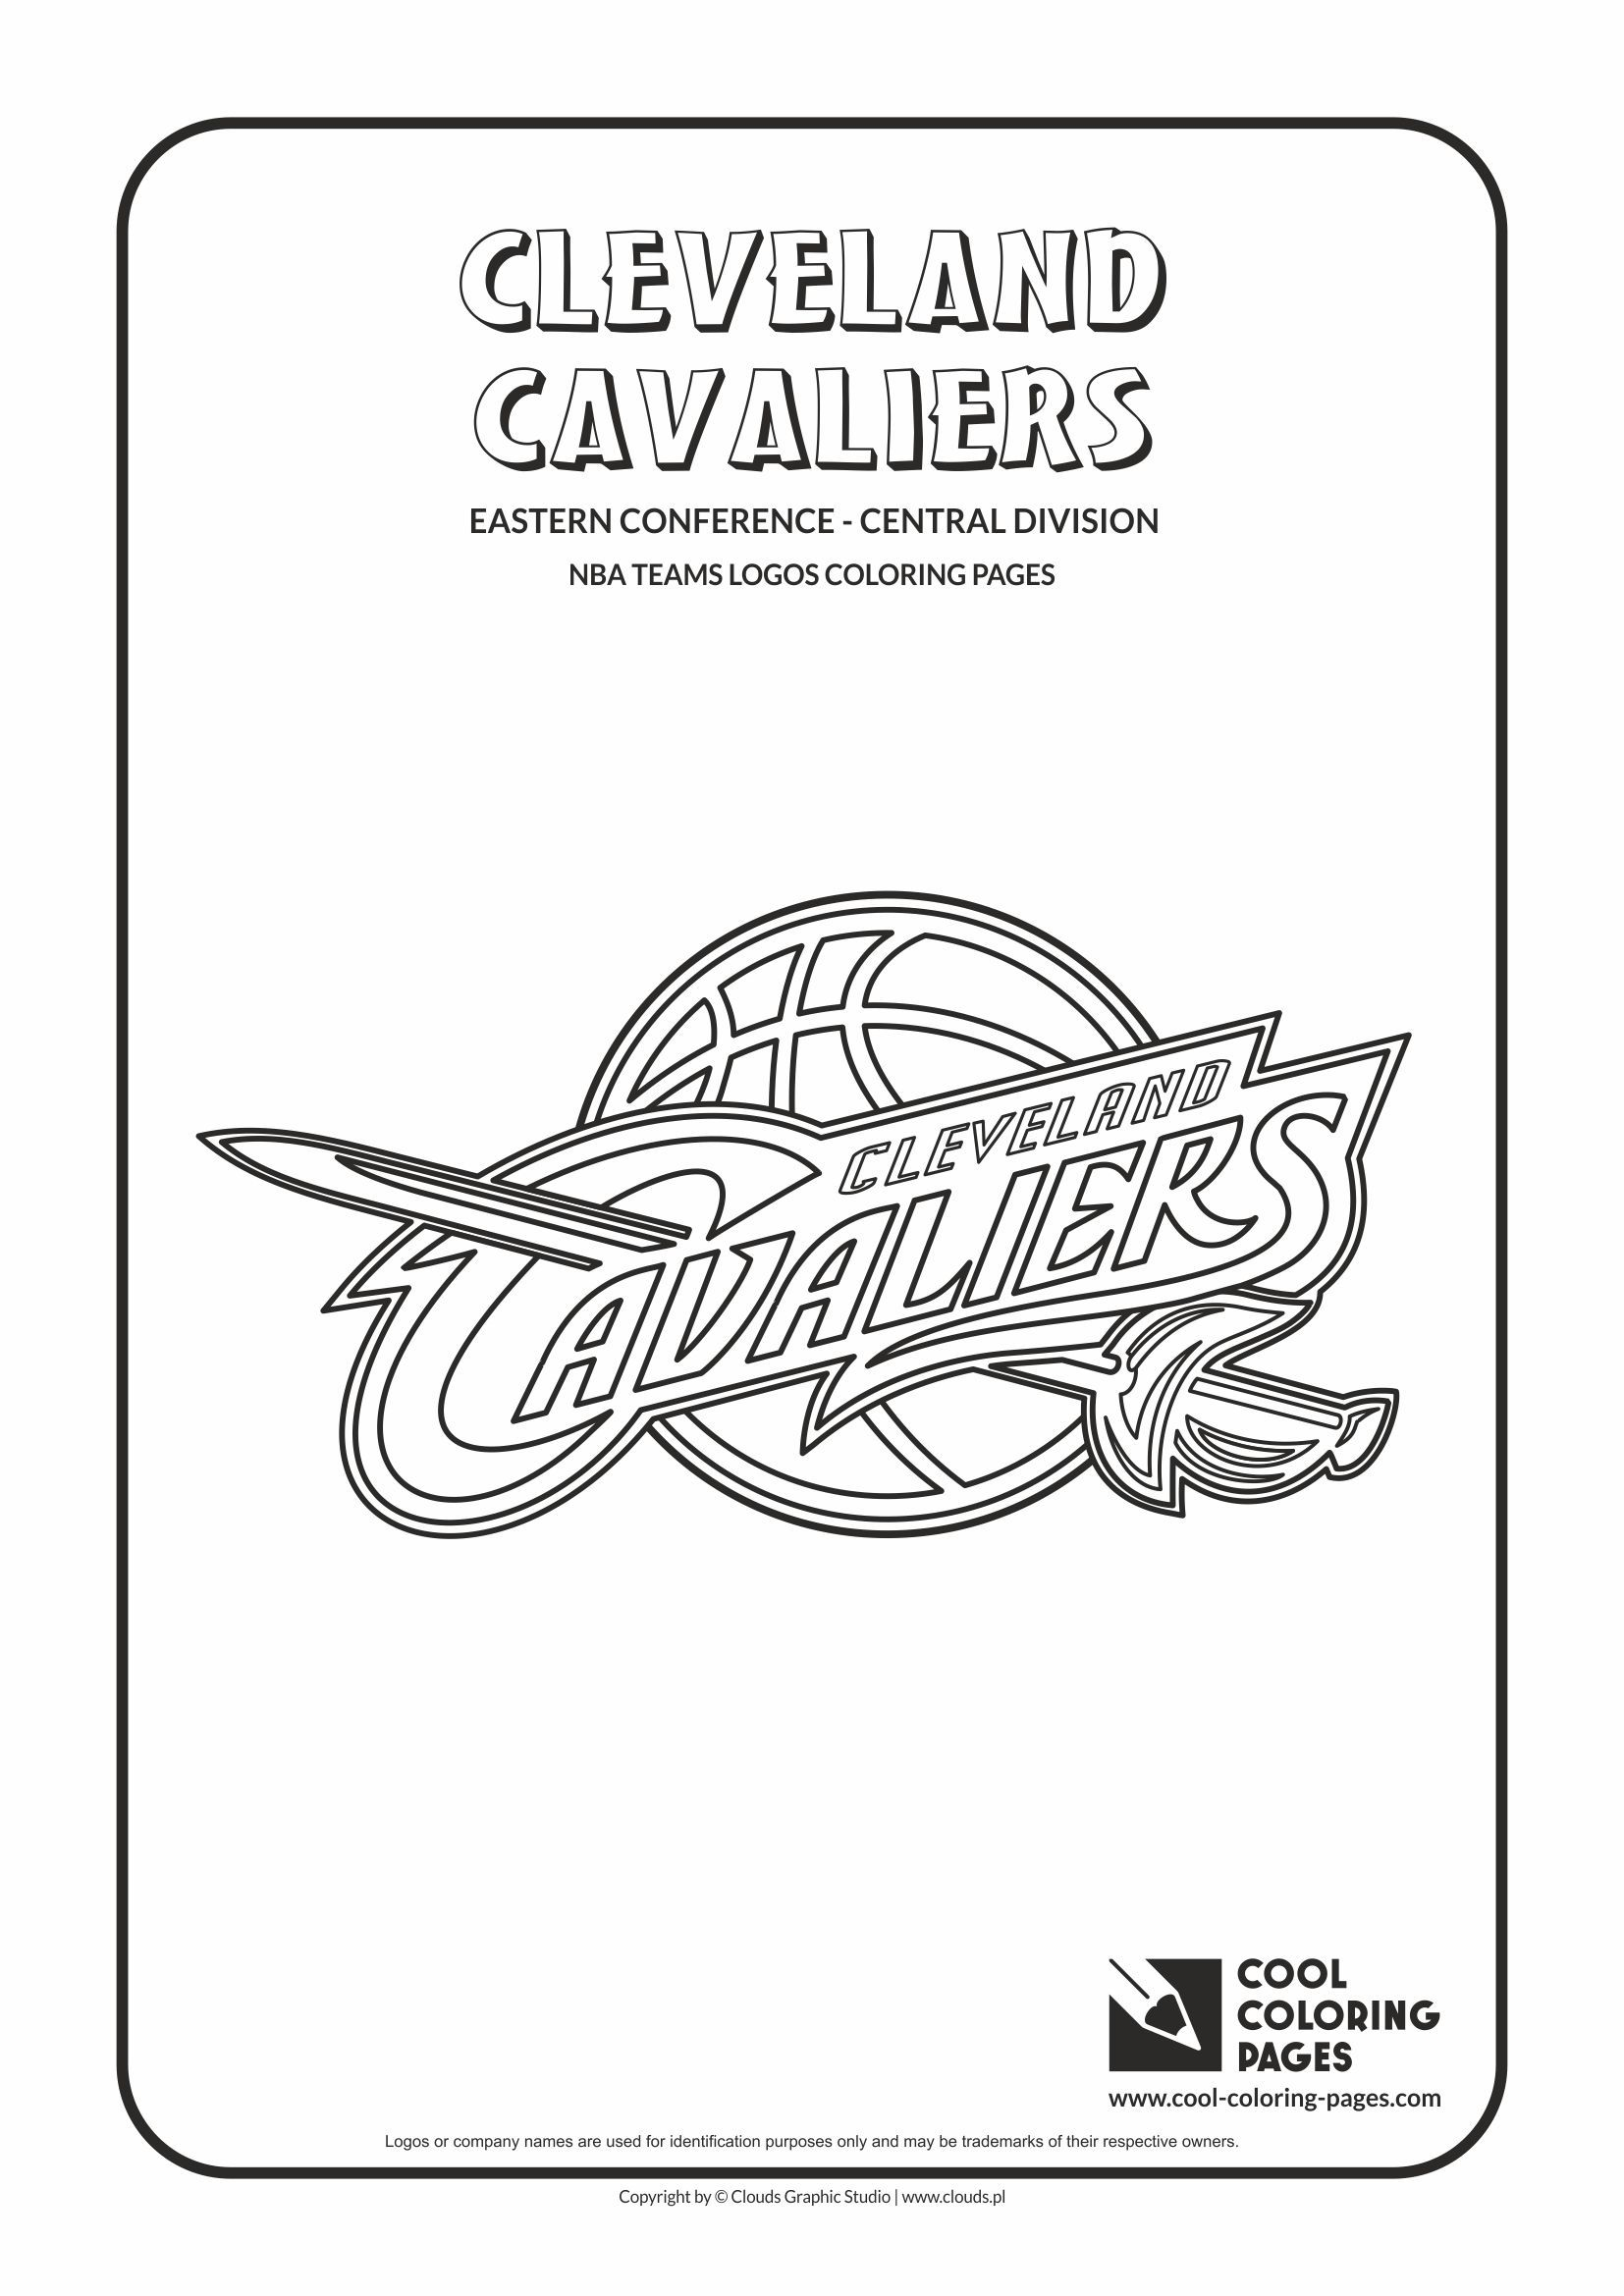 cool coloring pages nba teams logos cleveland cavaliers logo coloring page - Cleveland Sports Coloring Book